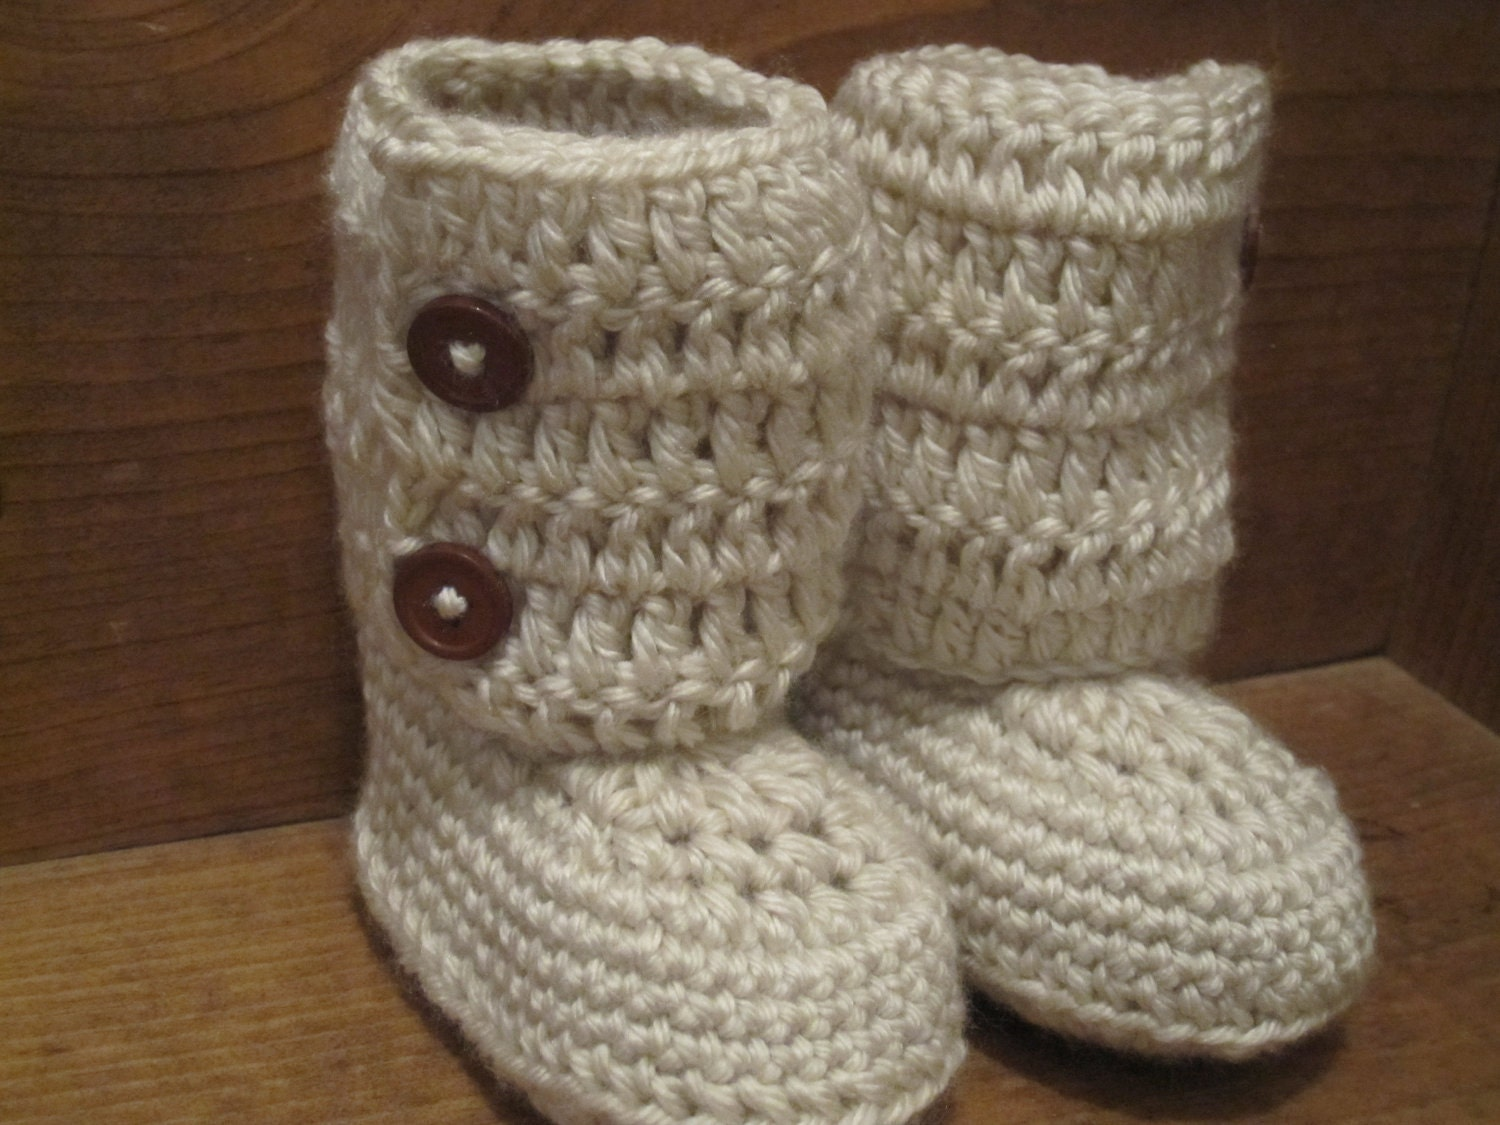 Crochet Geek - Crochet Baby High Top Bootie - YouTube